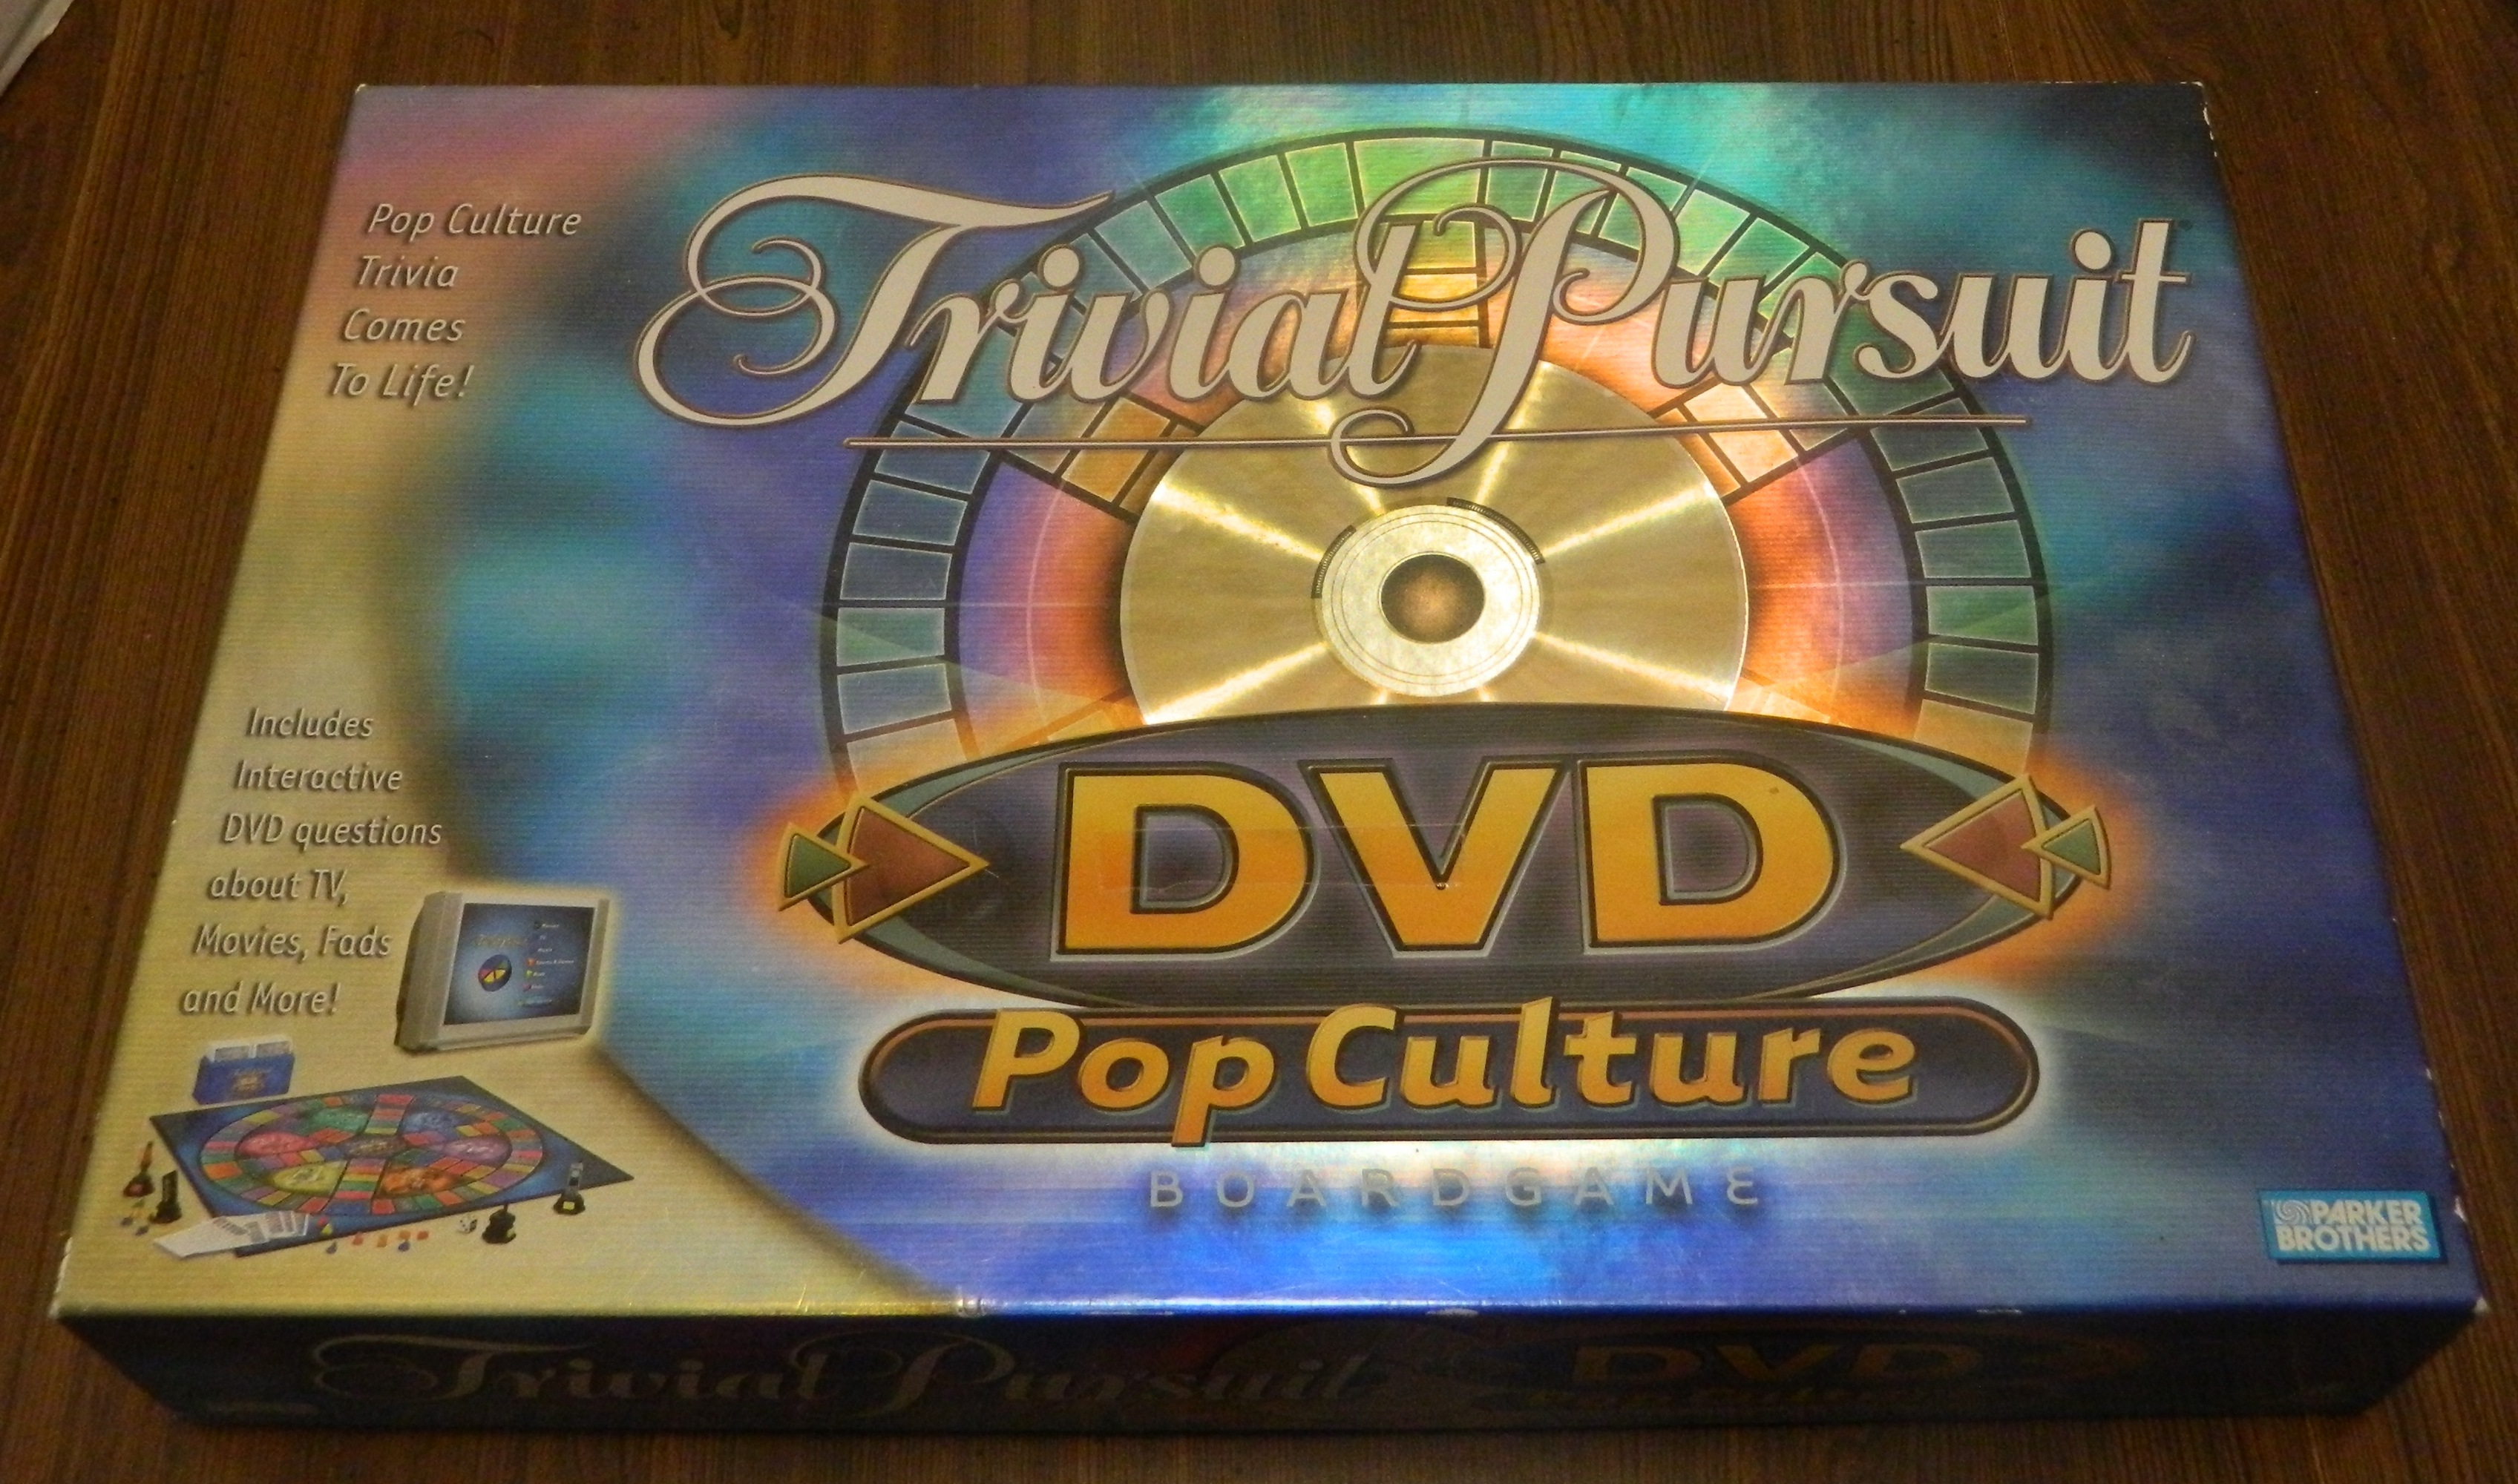 Trivial Pursuit DVD Pop Culture Box